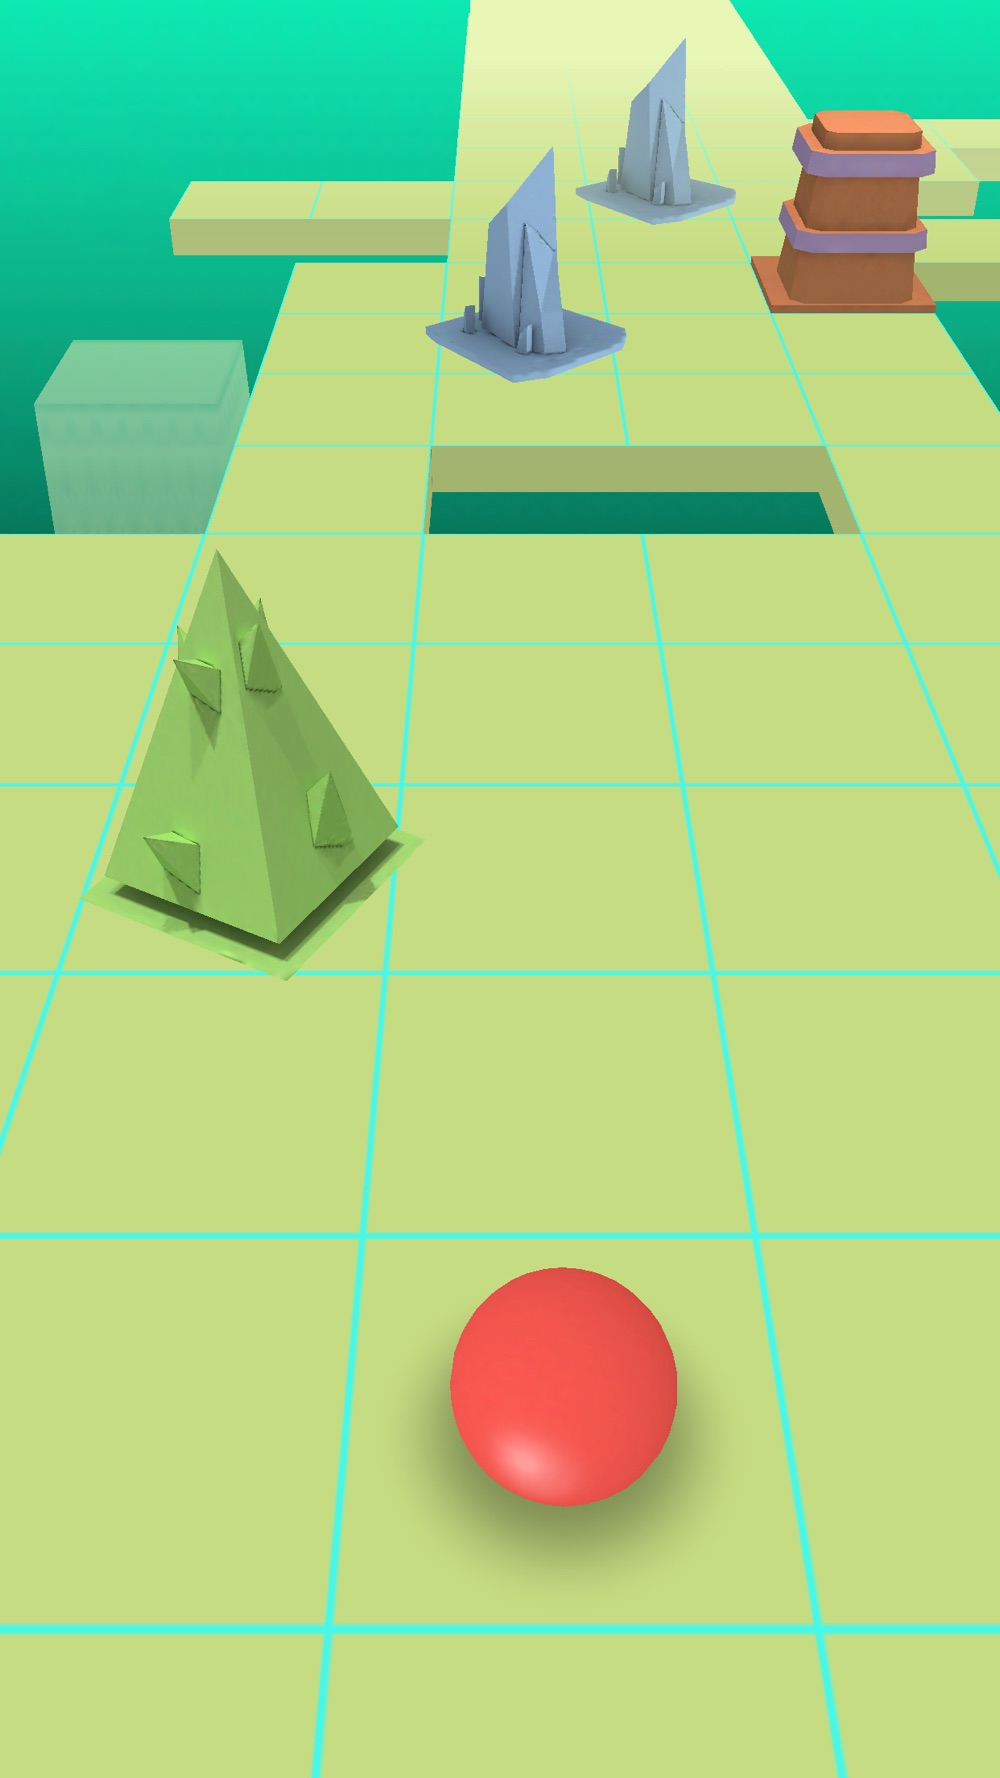 Hack tool for Rolling endless - Top challenge of fun free balls game